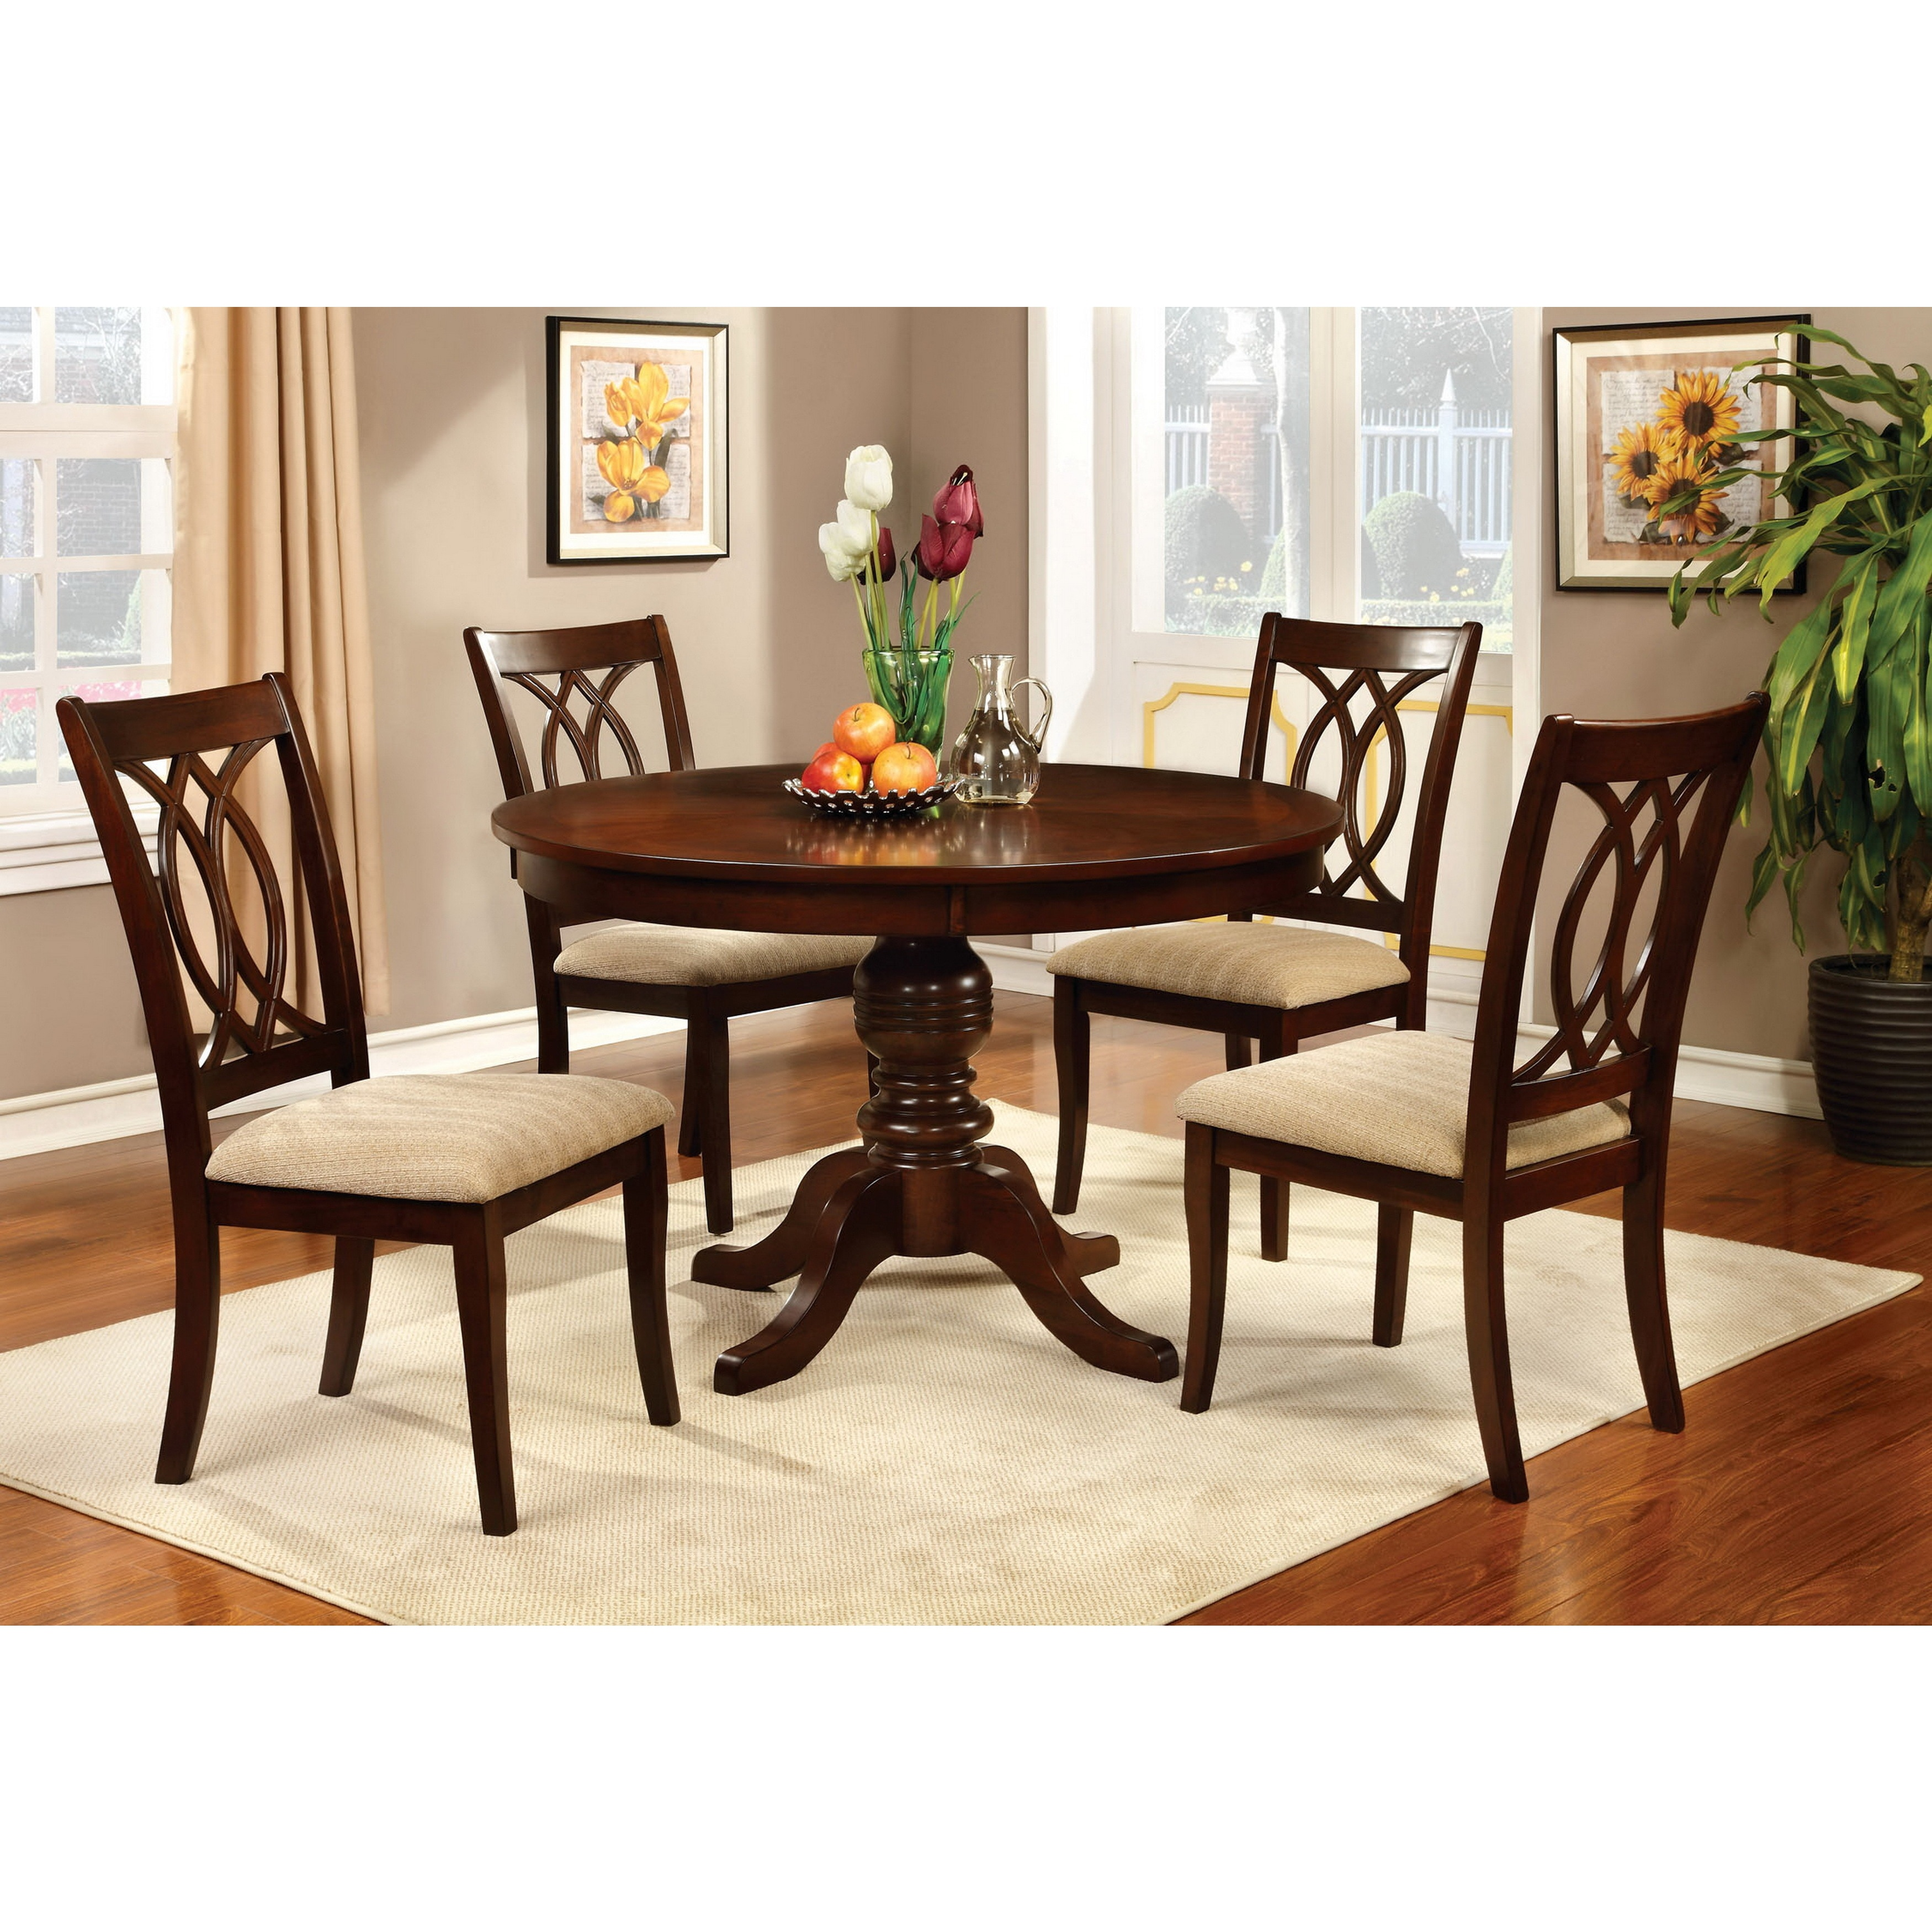 Furniture of America Cerille Elegant Brown Cherry Dining Chairs (Set ...